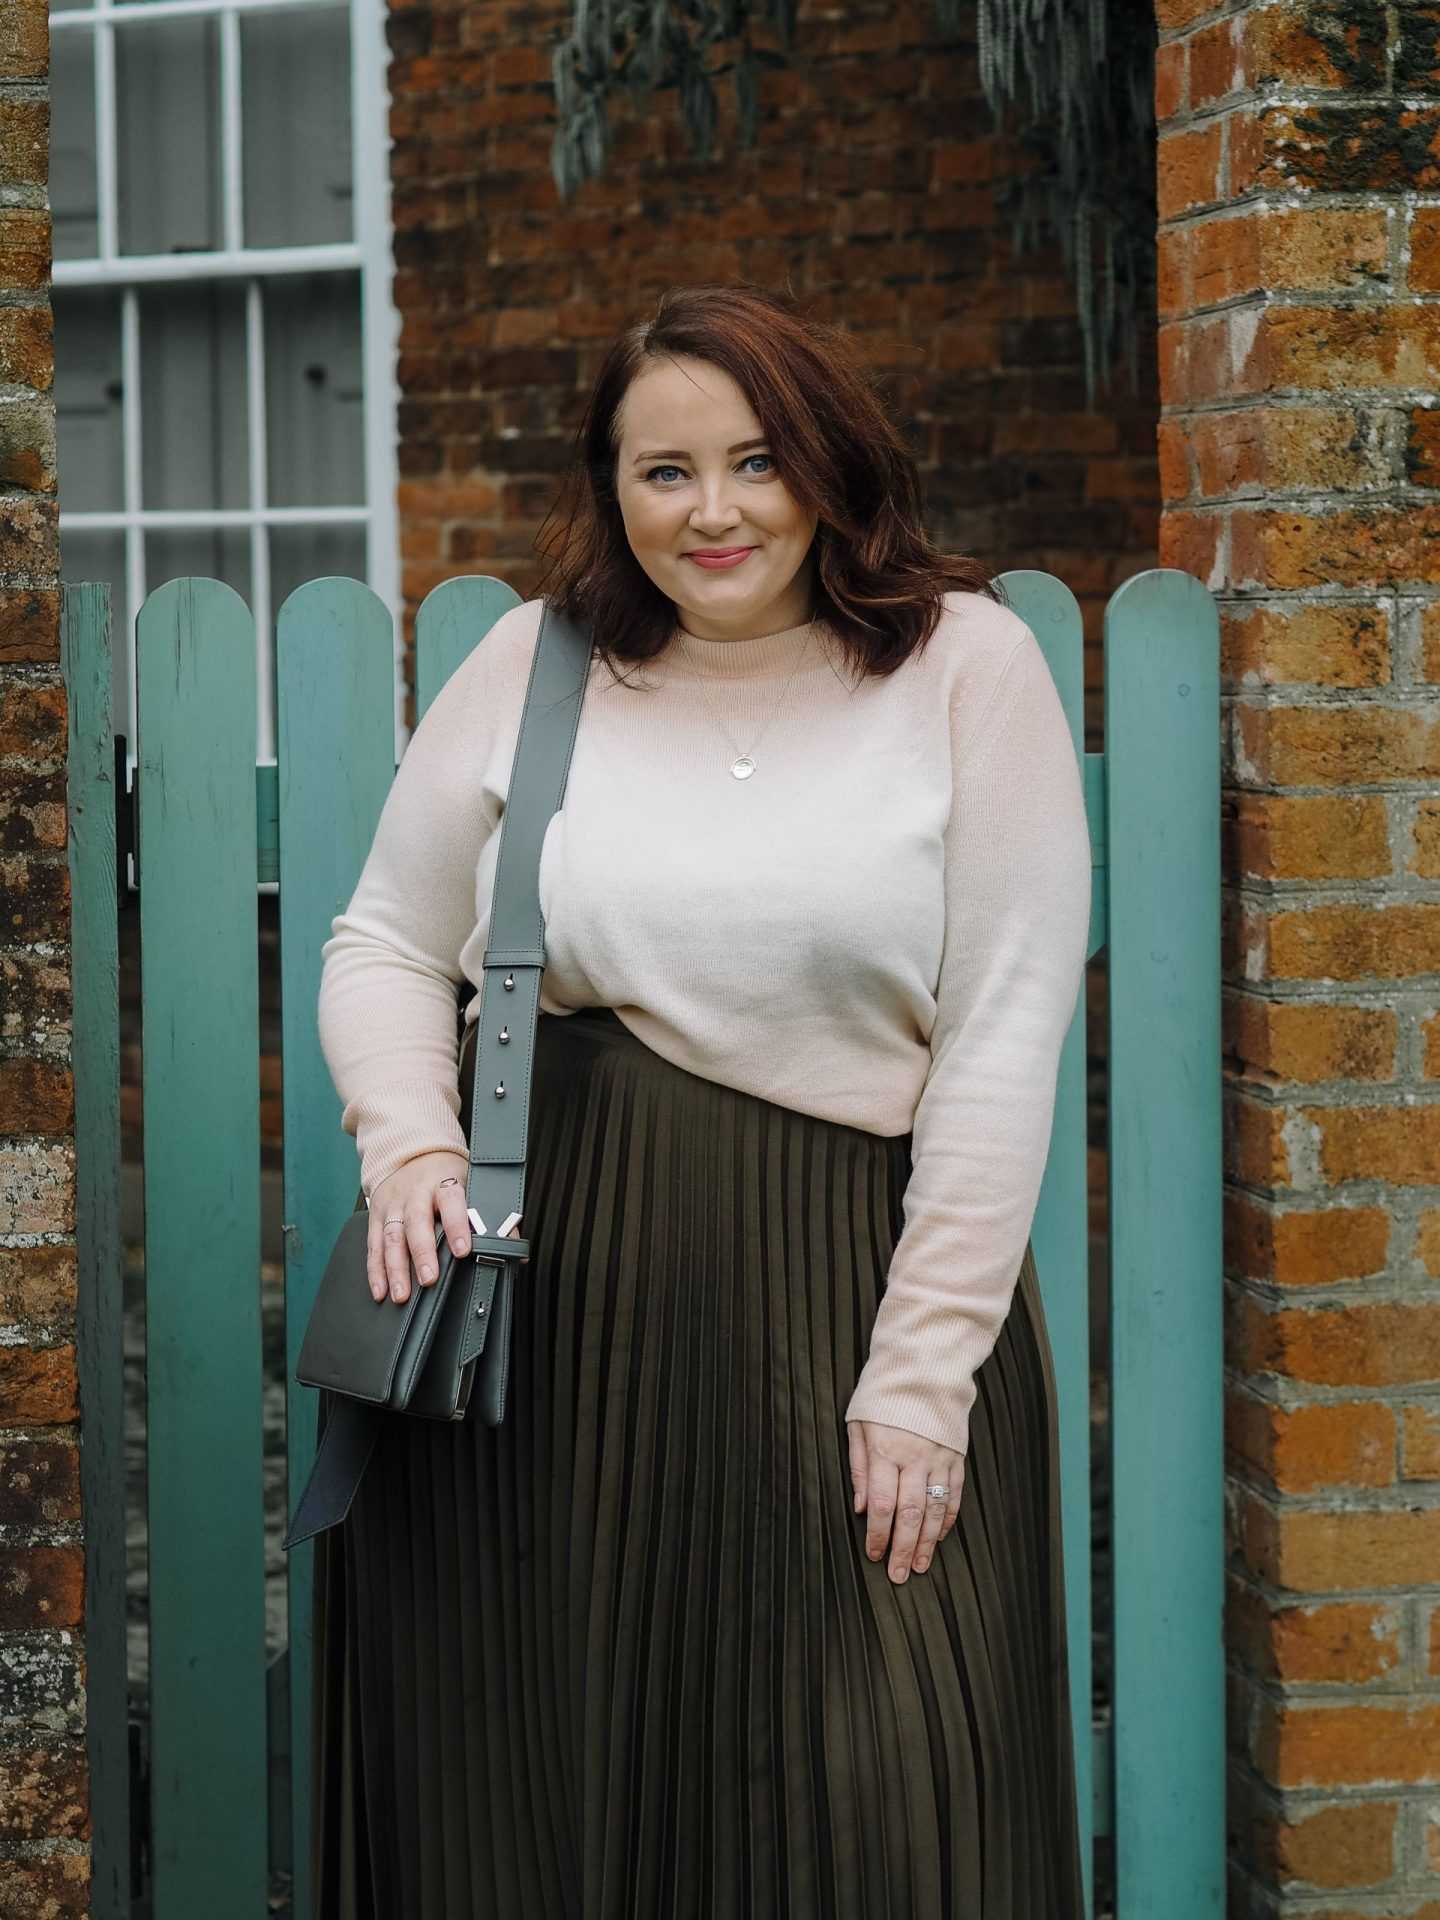 Modest Fashion Blogger: Covering Up Has Never Been More On-Trend